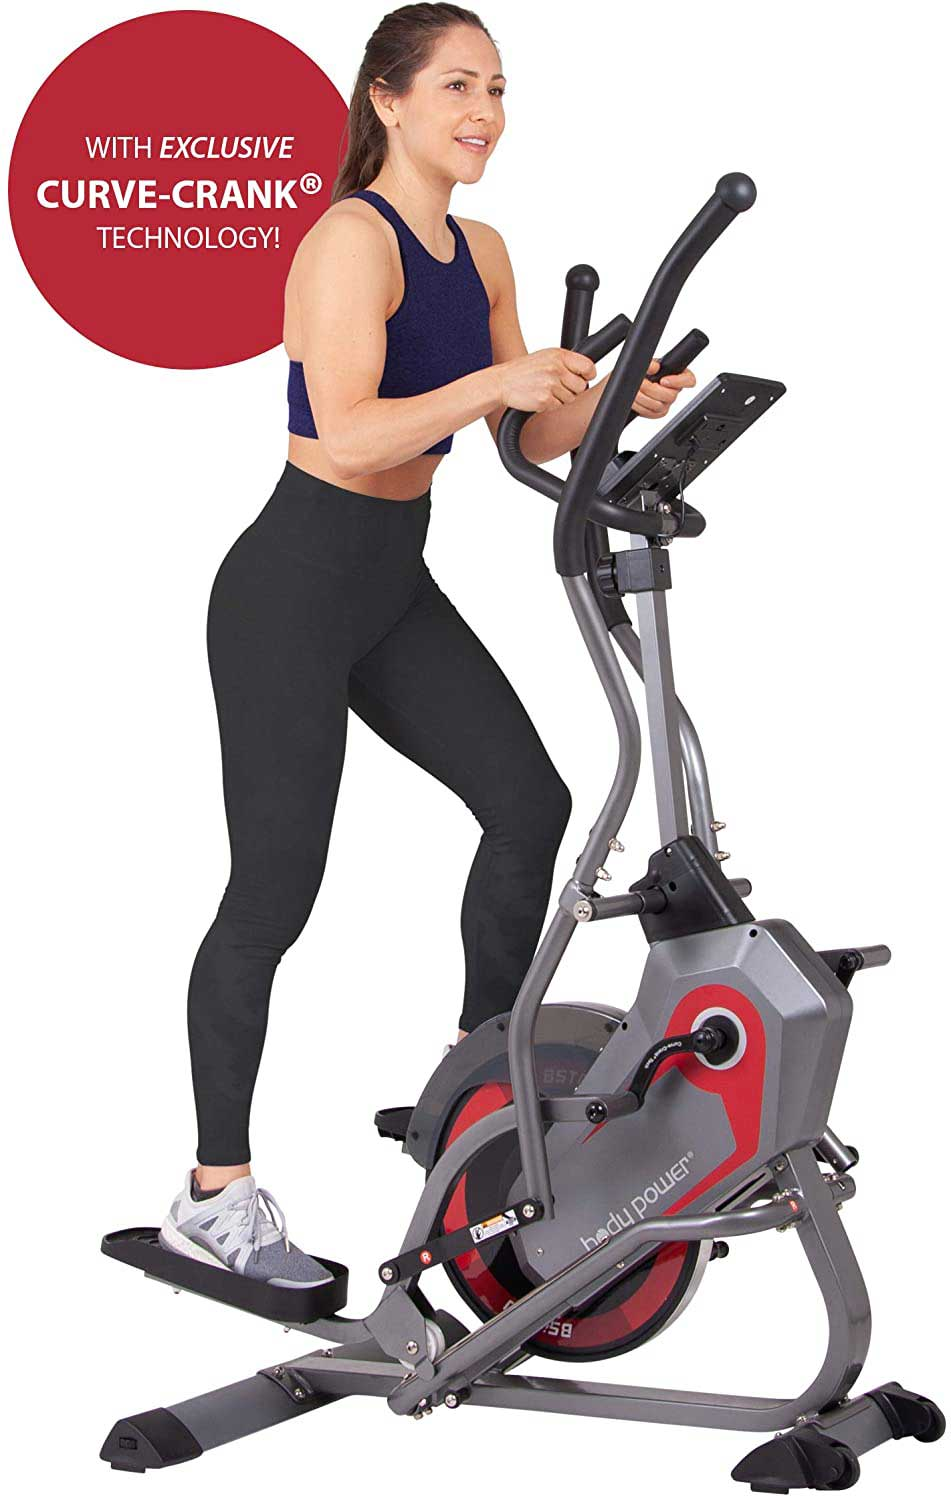 3.-Body-Power-3-in-1-Exercise-Machine